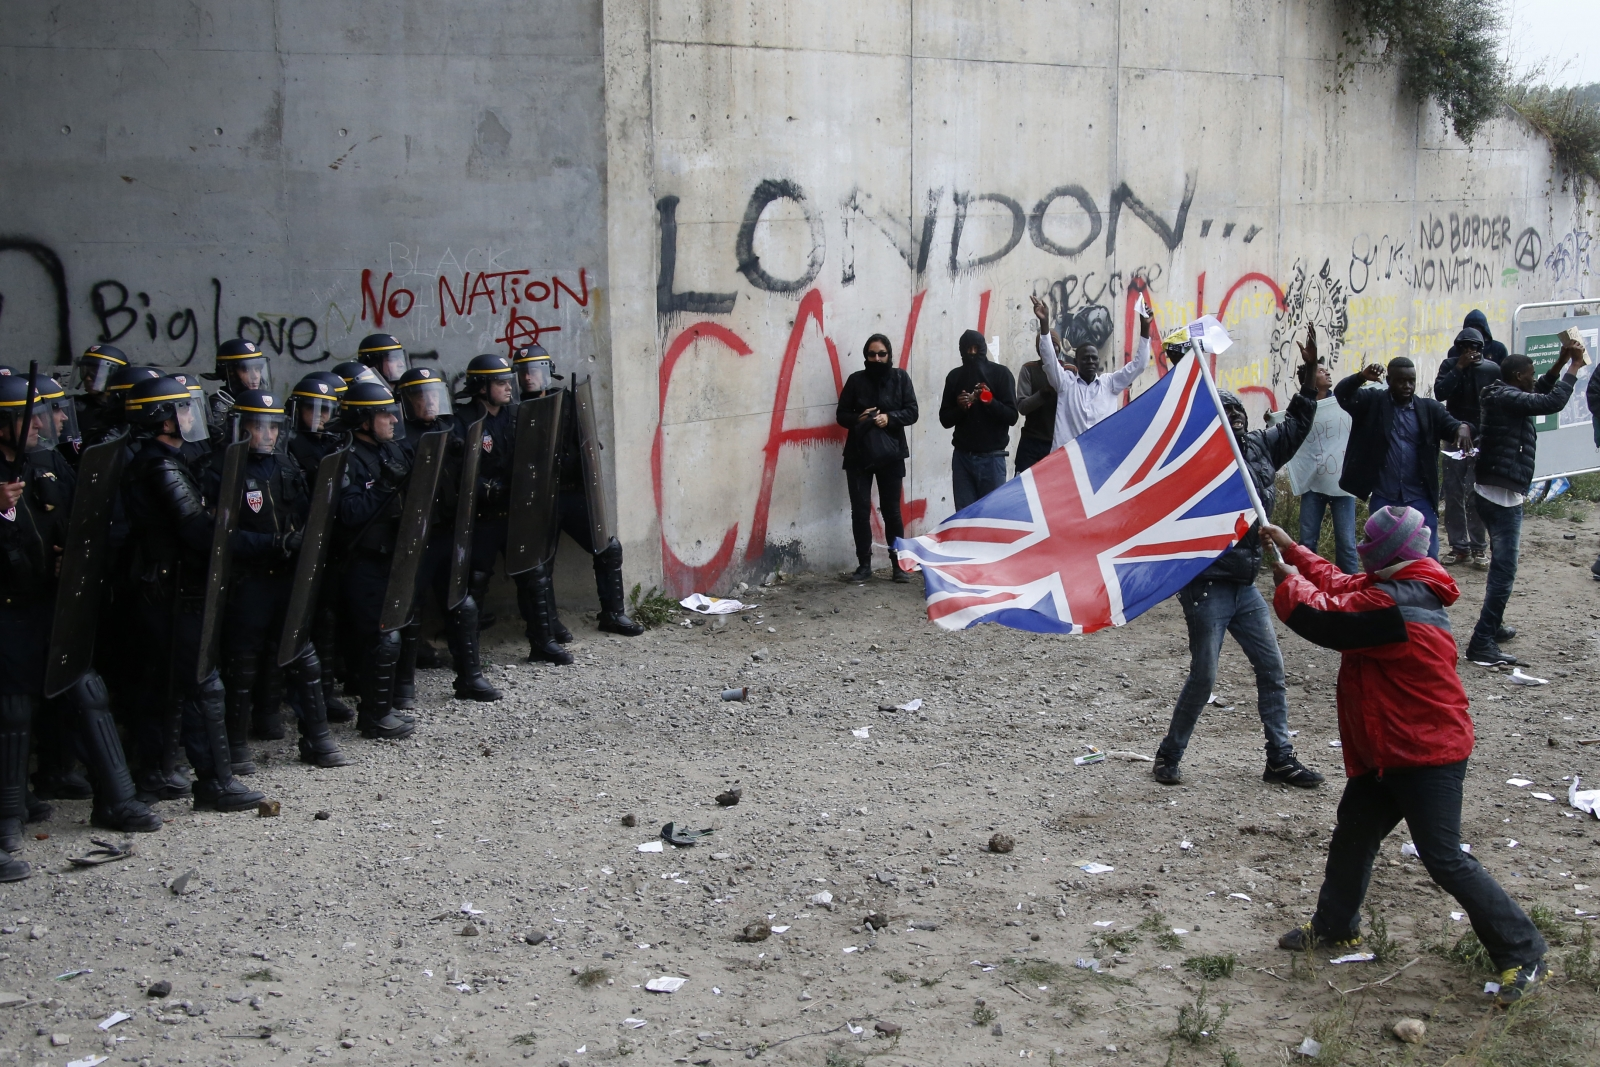 Migrants clash with police in Calais